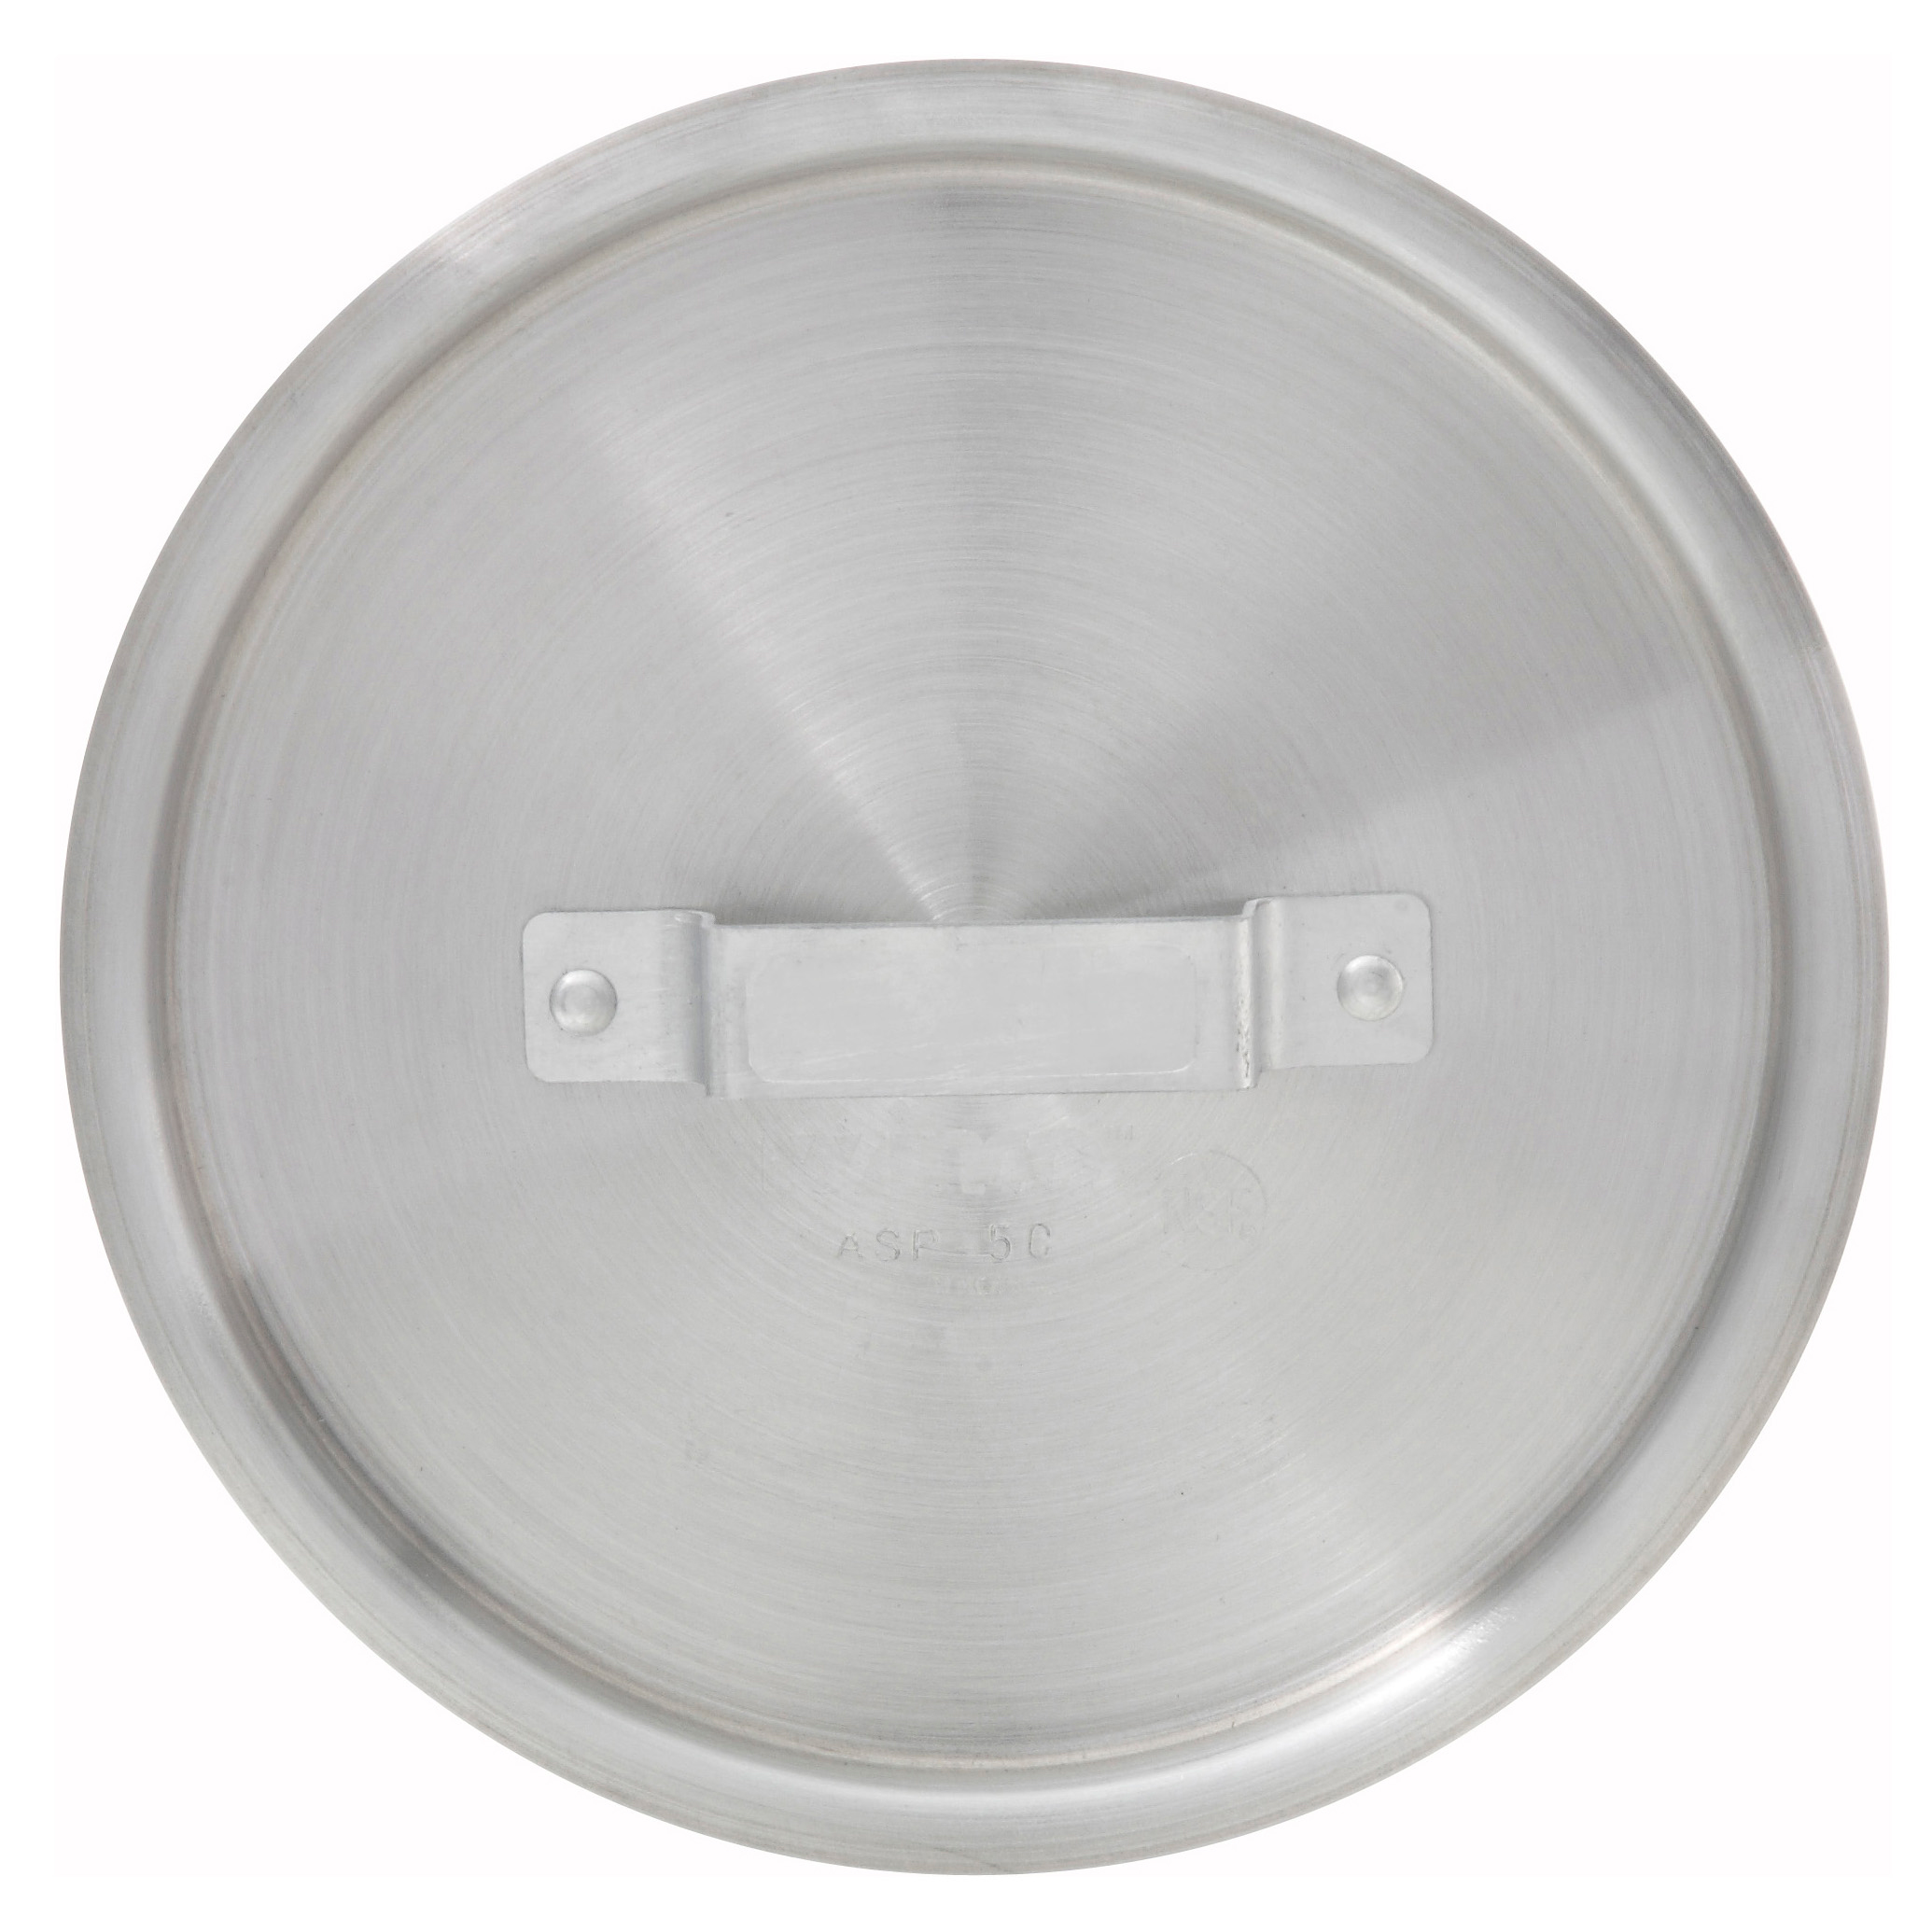 Winco ASP-5C cover / lid, cookware